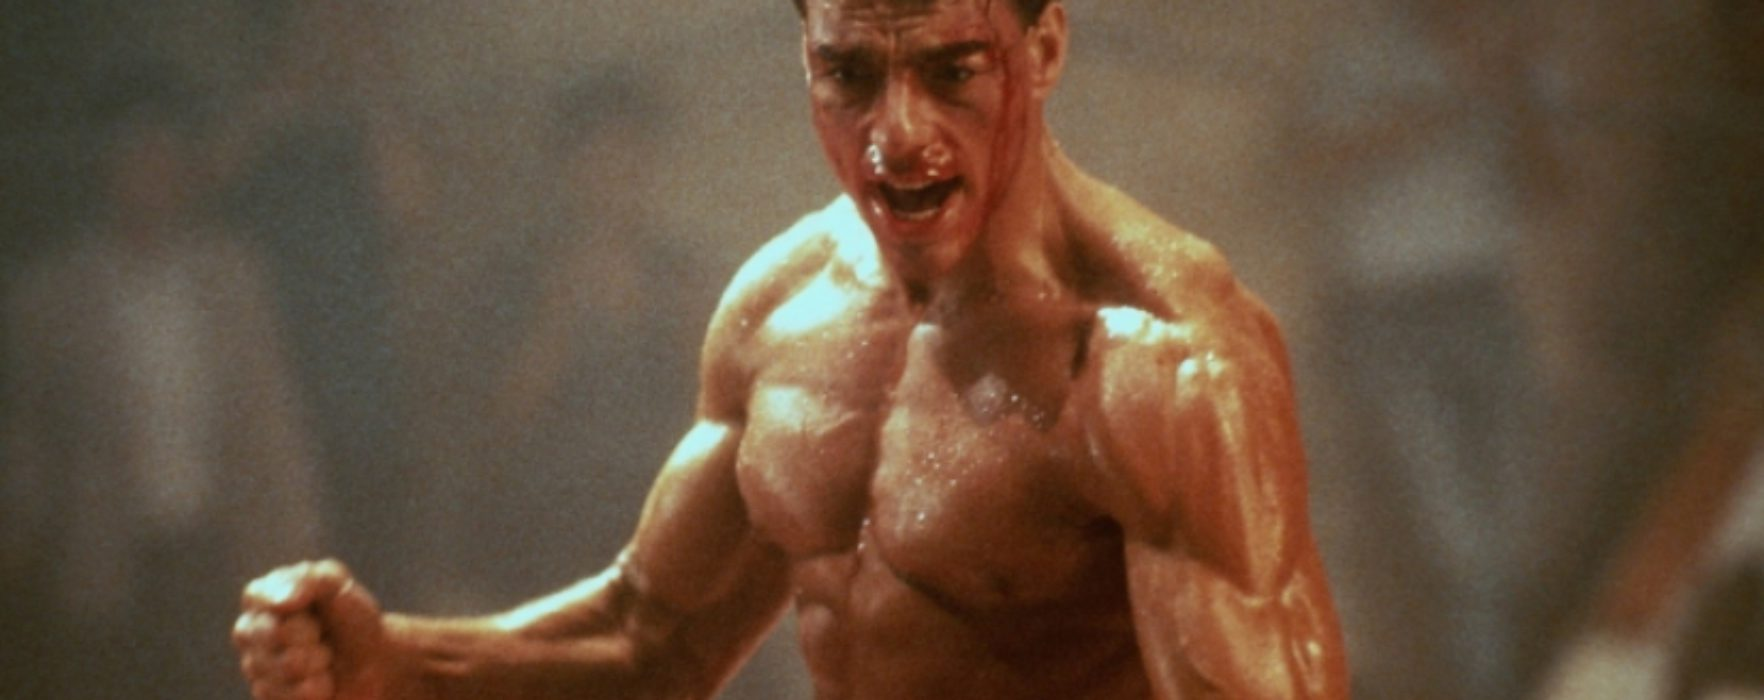 (English) Curiosity: UFC Champion furious with Jean Claude Van Damme